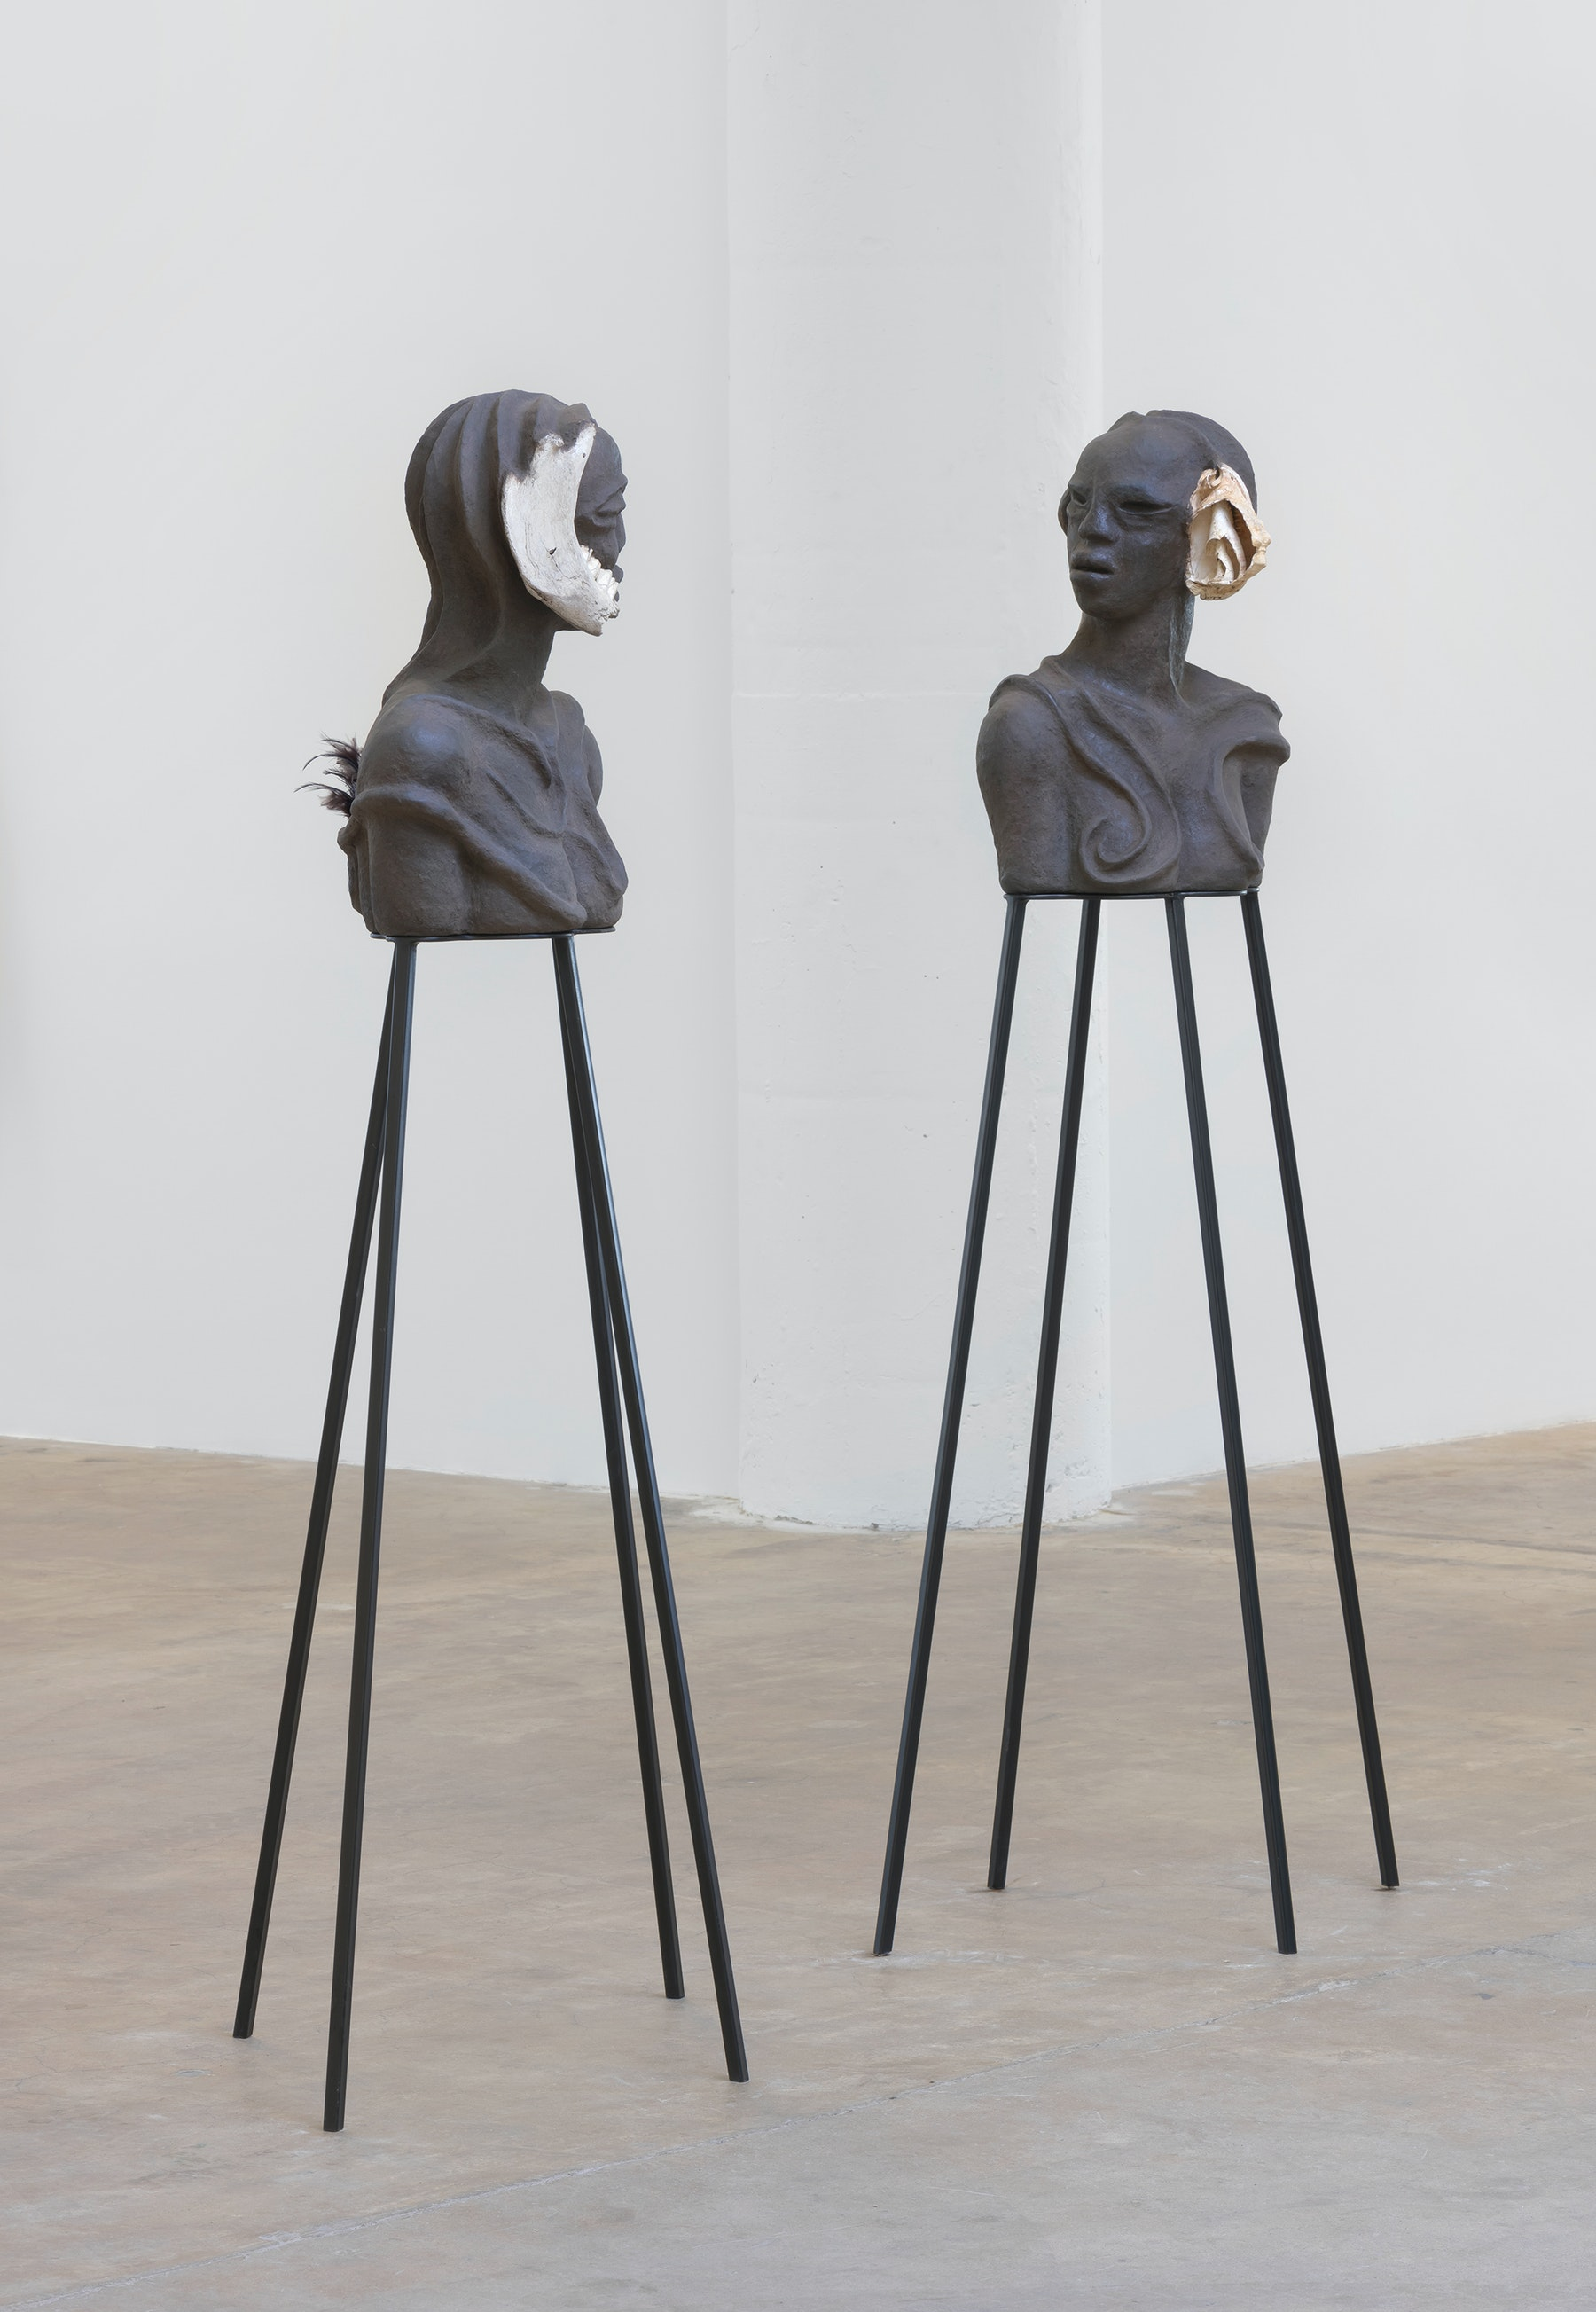 """Wangechi Mutu """"I am Speaking, Can you hear me?,"""" 2020 Paper pulp, wood glue, soil, charcoal, bone, feathers, shells, wood, metal stands 22 1/8 x 32 1/2 x 14 1/8 in. (56 x 82.5 x 36 cm) (overall) Inventory #MUT505 Courtesy of the artist and Vielmetter Los Angeles Photo credit: Robert Wedemeyer"""